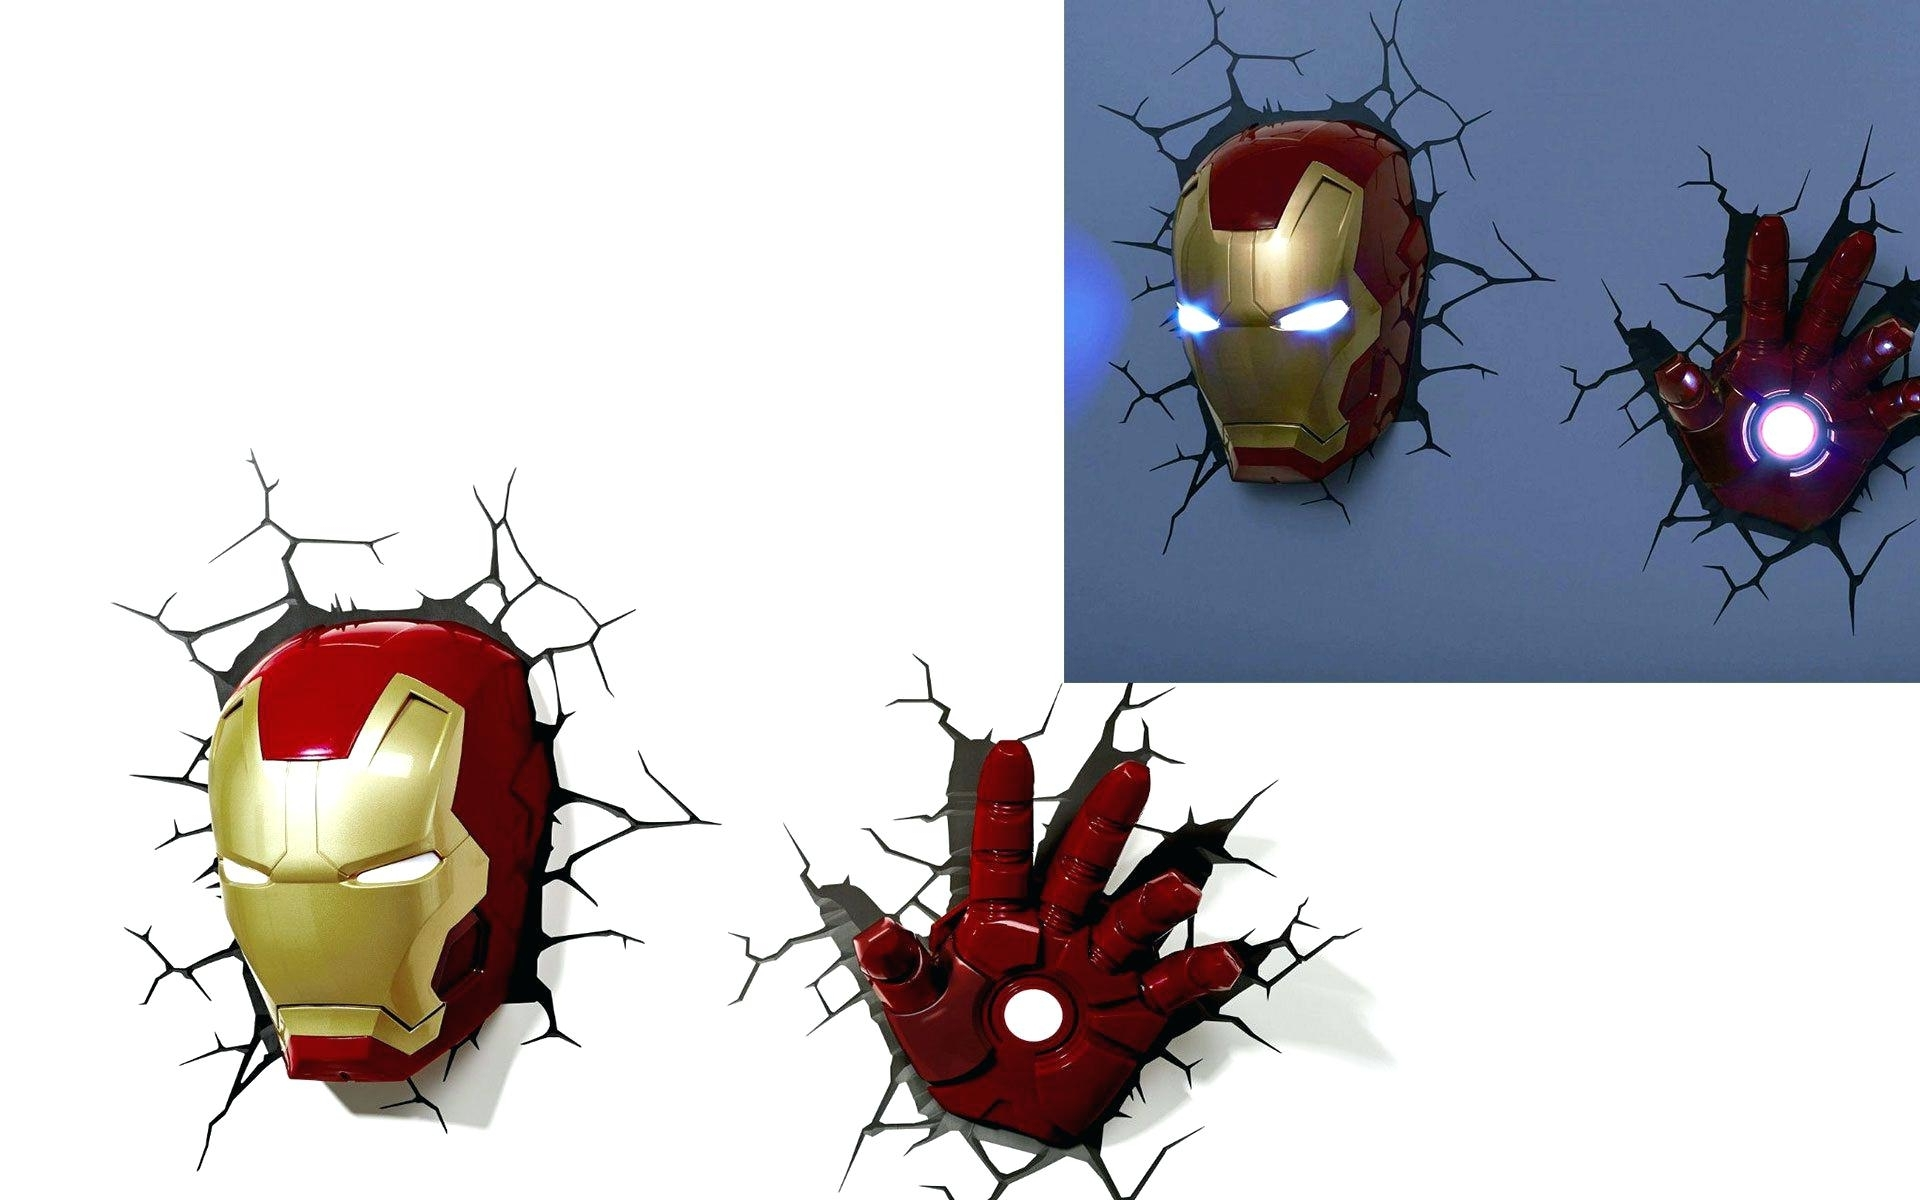 Famous 3D Wall Lights S R 3D Wall Art Night Light Australia Marvel 3D Inside 3D Wall Art Night Light Australia (View 8 of 15)